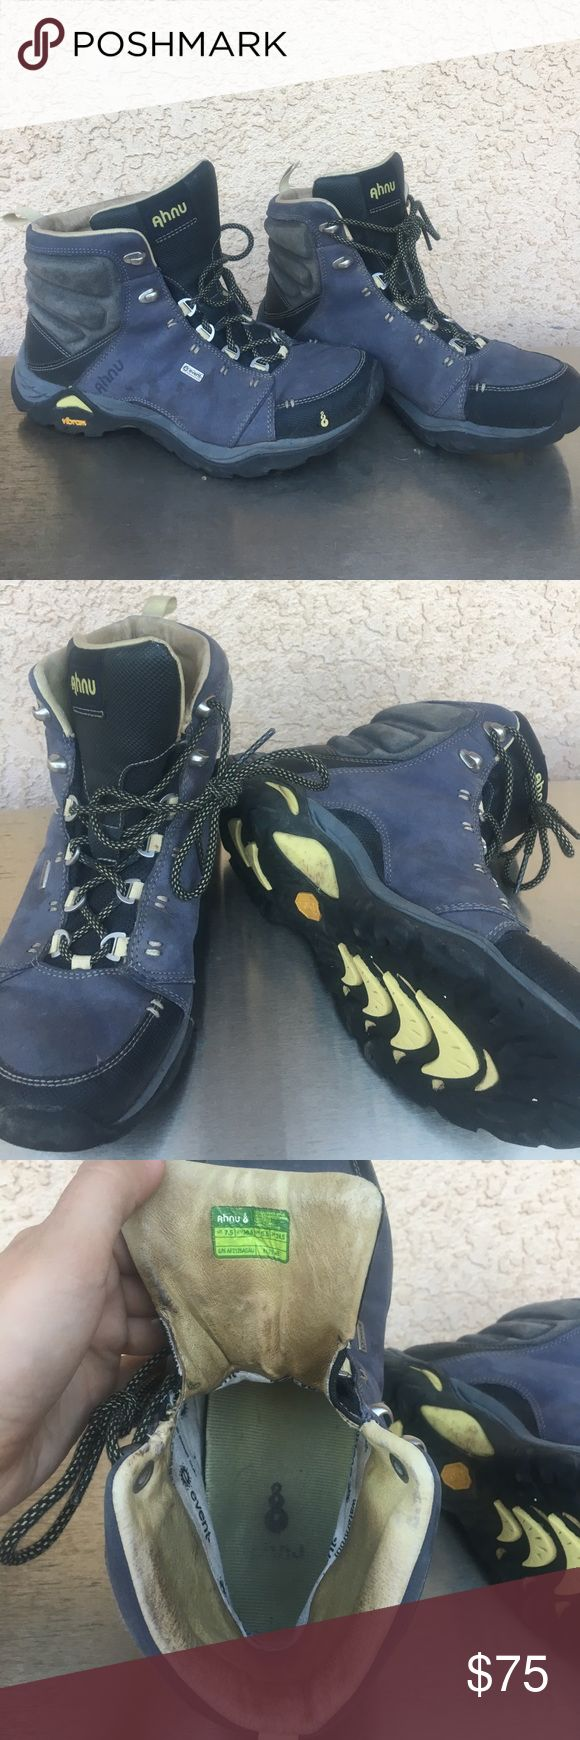 Ahnu women's hiking boots Women's ahnu boots, size 7.5. Only work a handful of times, less than 20 miles on these boots. Event waterproof lining on the inside and vibrant soles. Nice lightweight boots. Some discoloration on outside, see pictures. Ahnu Shoes Ankle Boots & Booties